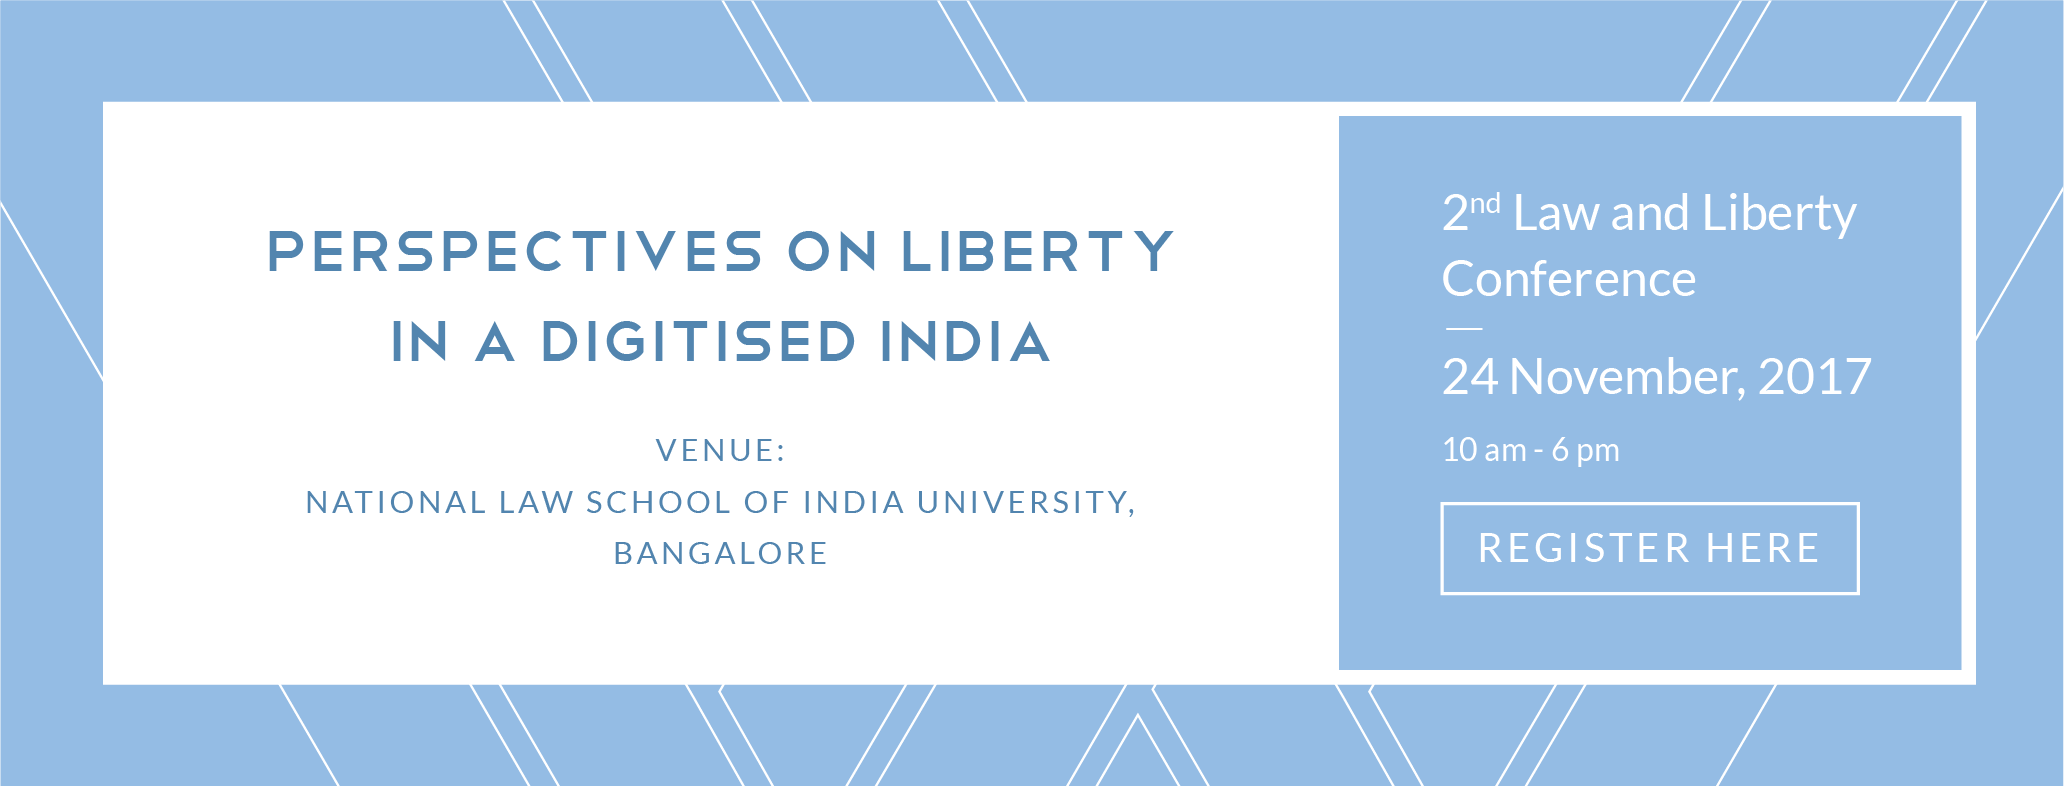 CCS and NLSIU's 2nd Law and Liberty Conference [Nov 24, Bangalore]: Register by Nov 15